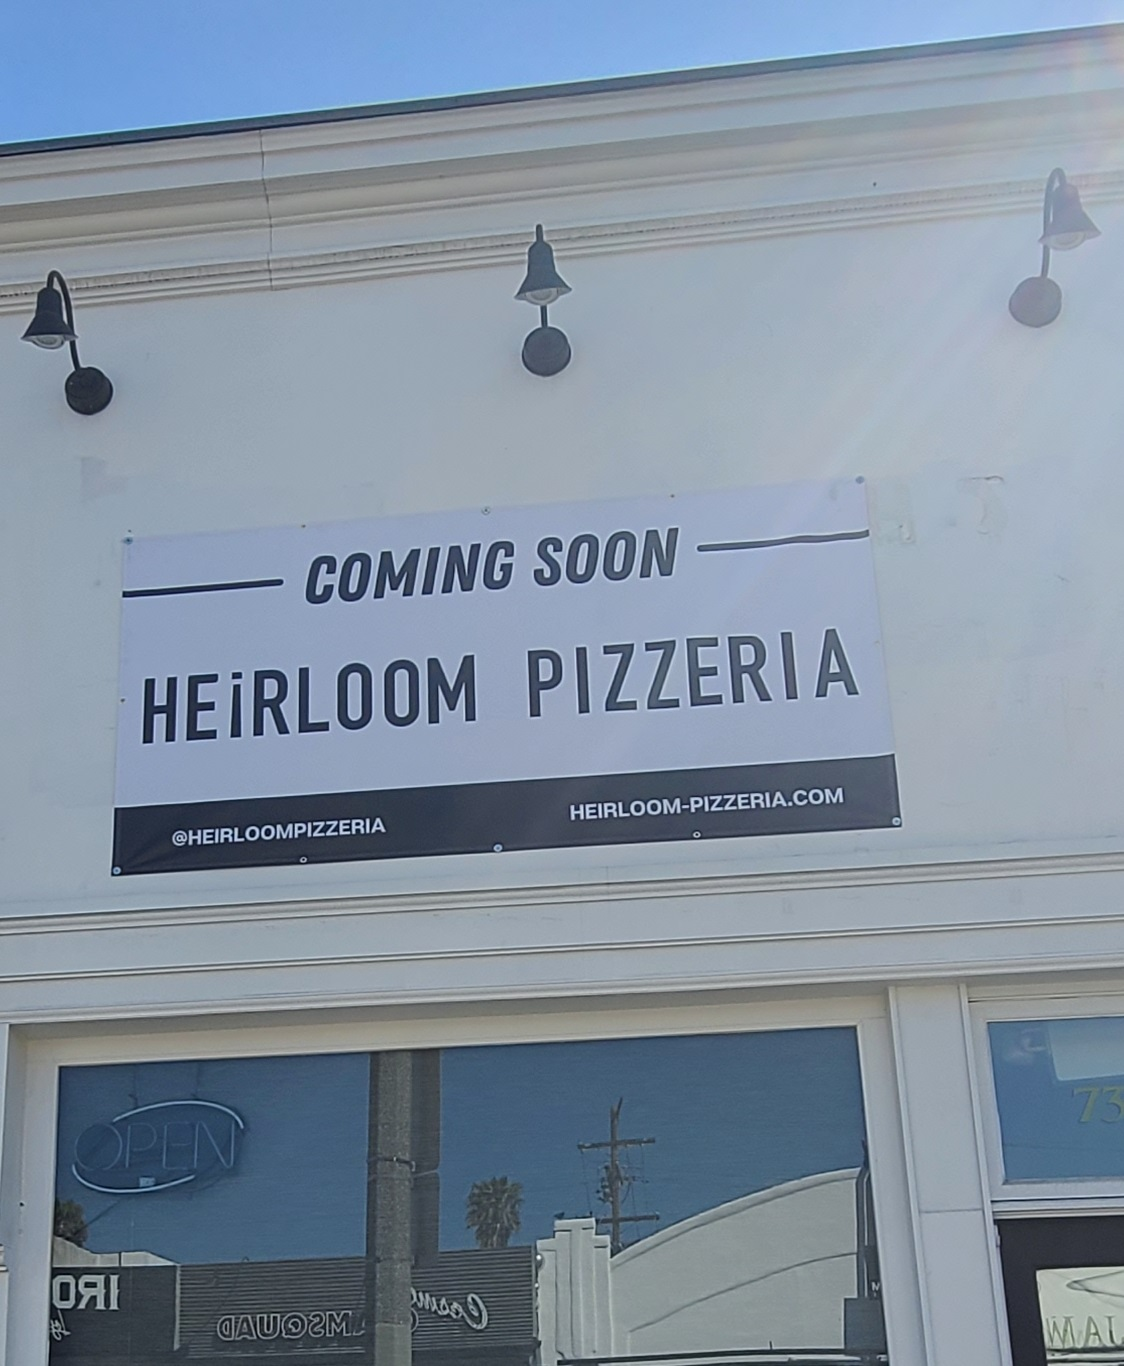 This is the temporary banner we provided Heirloom Pizza while we make their permeant sign.